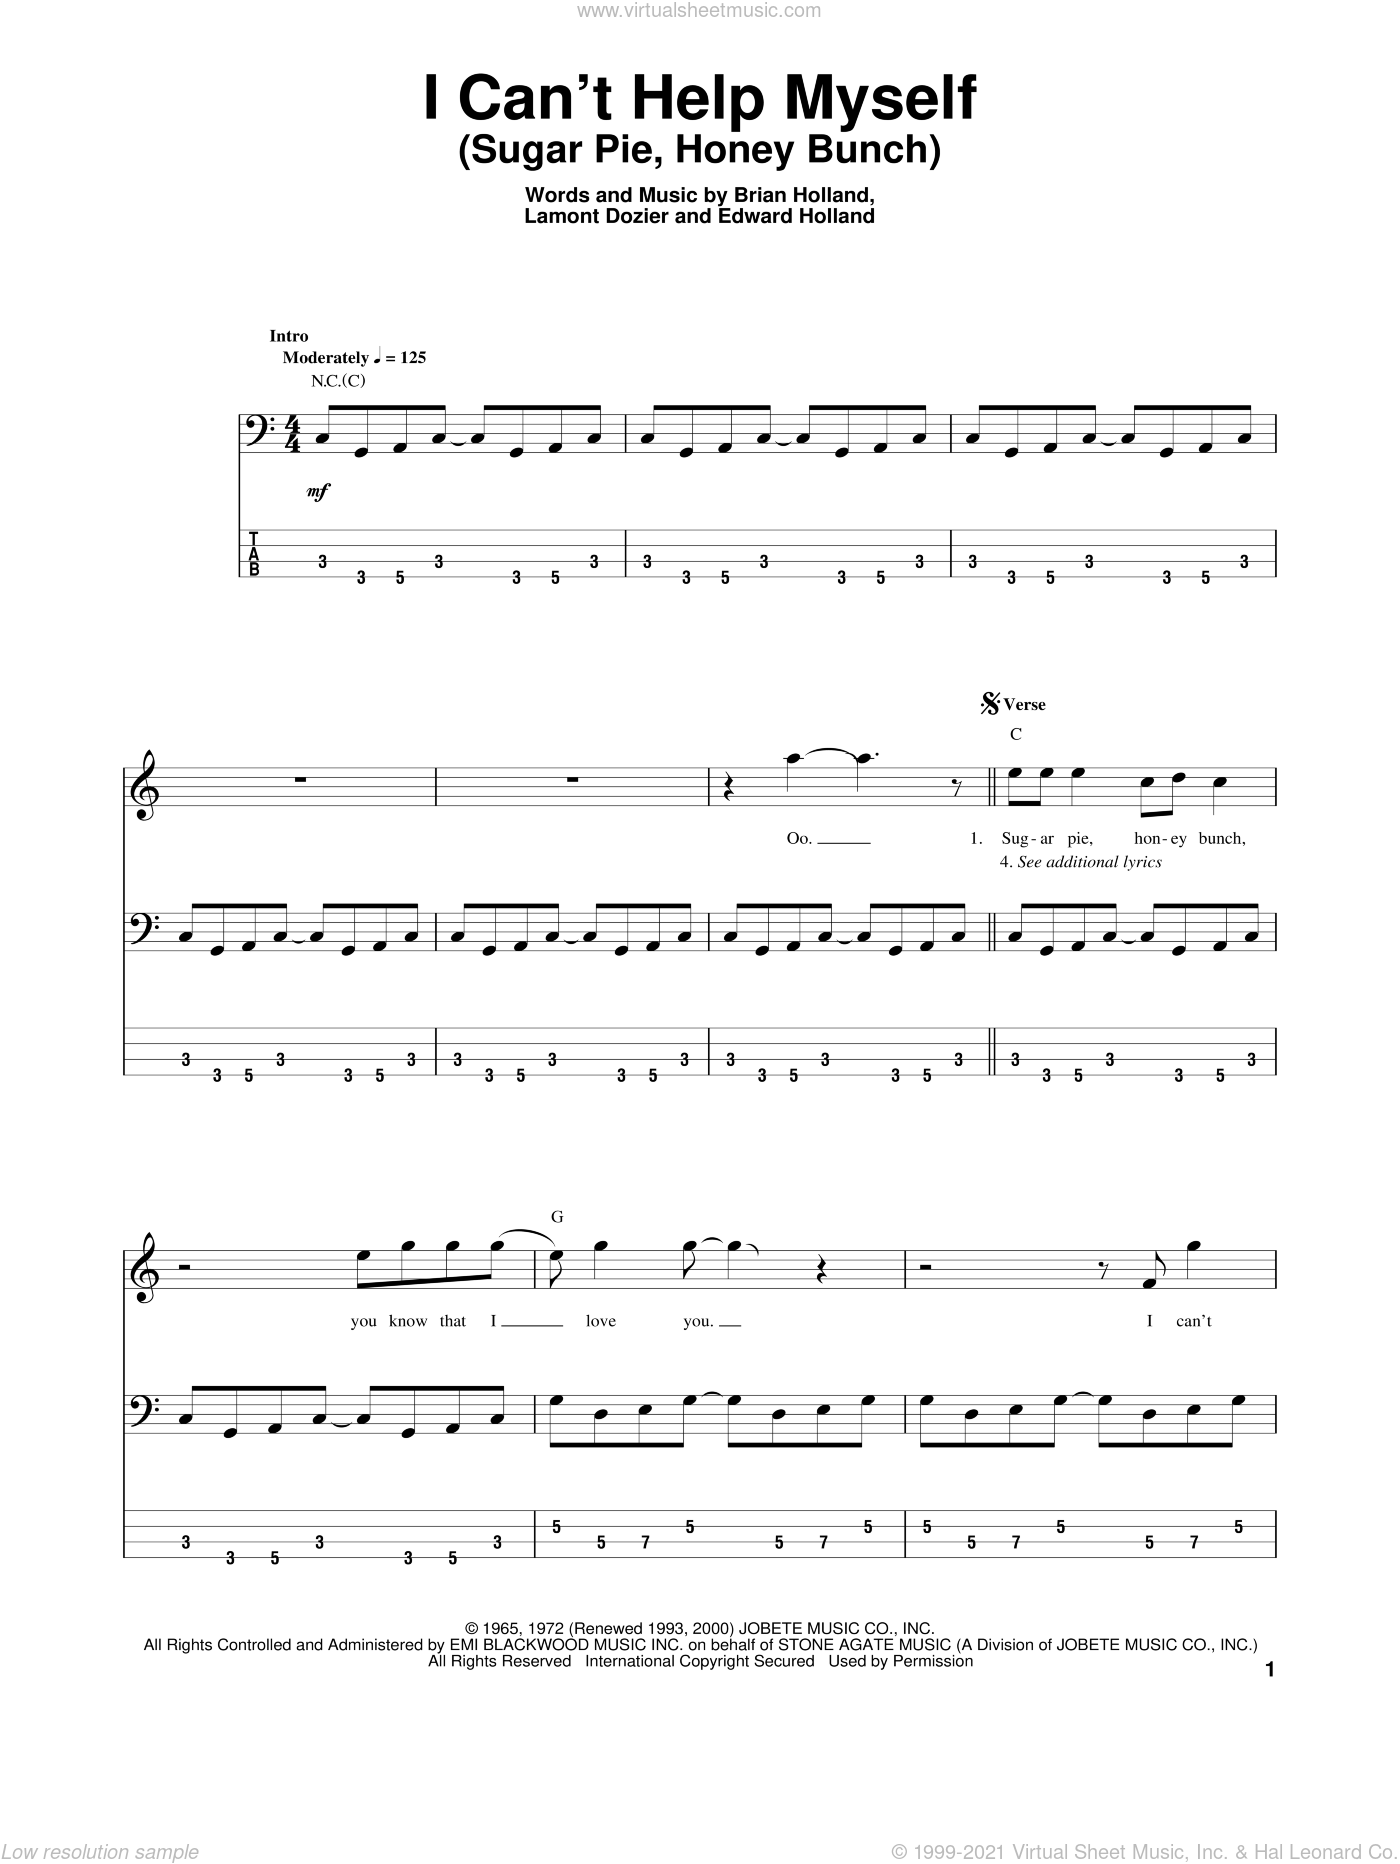 I Can't Help Myself (Sugar Pie, Honey Bunch) sheet music for bass (tablature) (bass guitar) by The Four Tops, Brian Holland, Eddie Holland and Lamont Dozier. Score Image Preview.